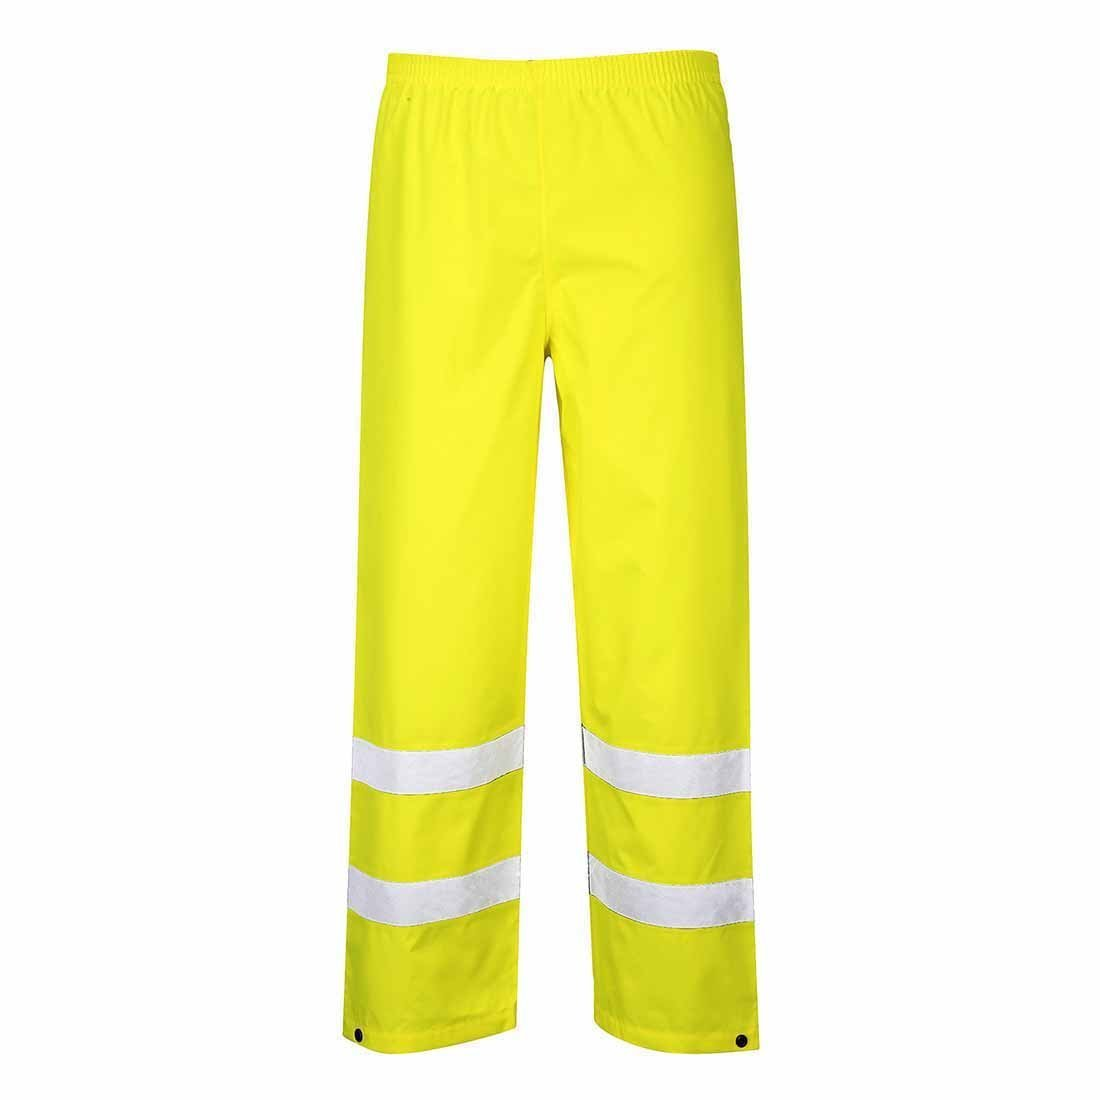 TALLA M. Portwest S480 - Hi-Vis Tráfico Plancha, color Amarillo, talla Medium